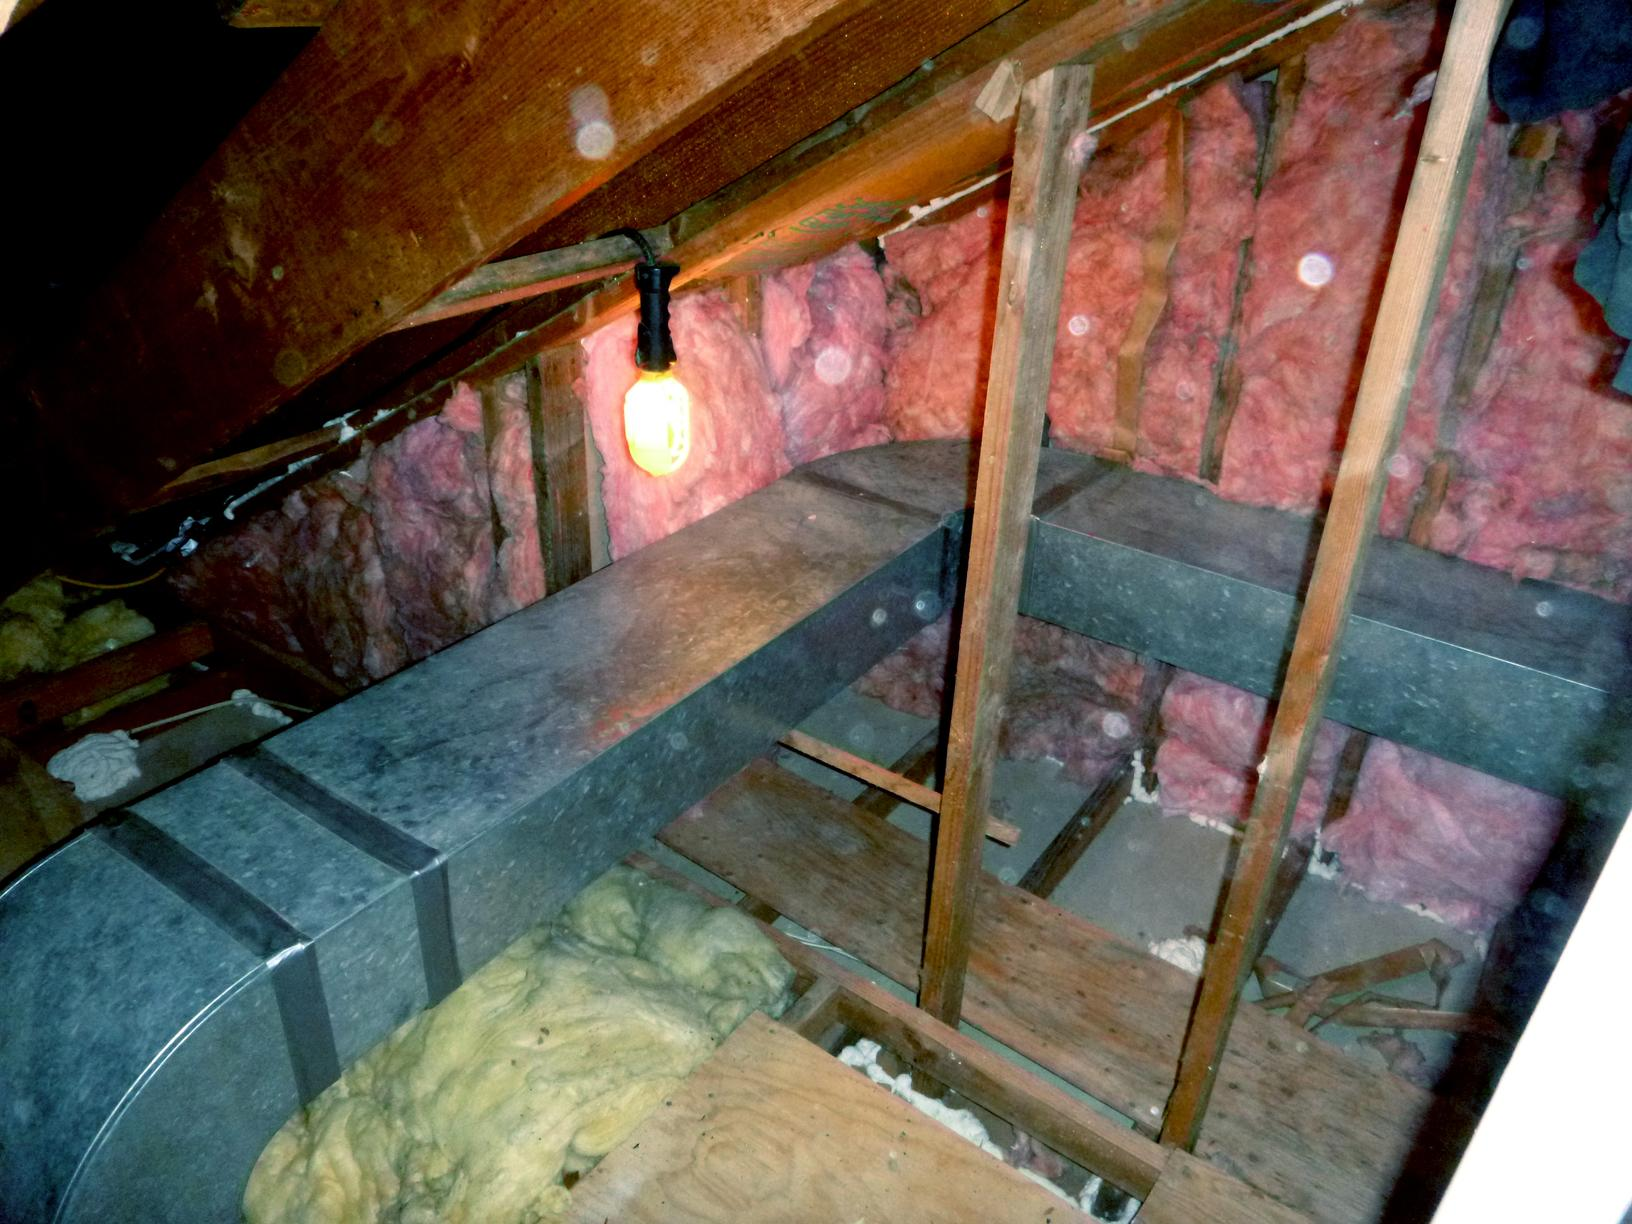 Attic Insulation and Storage Space in Shokan, NY - Before Photo